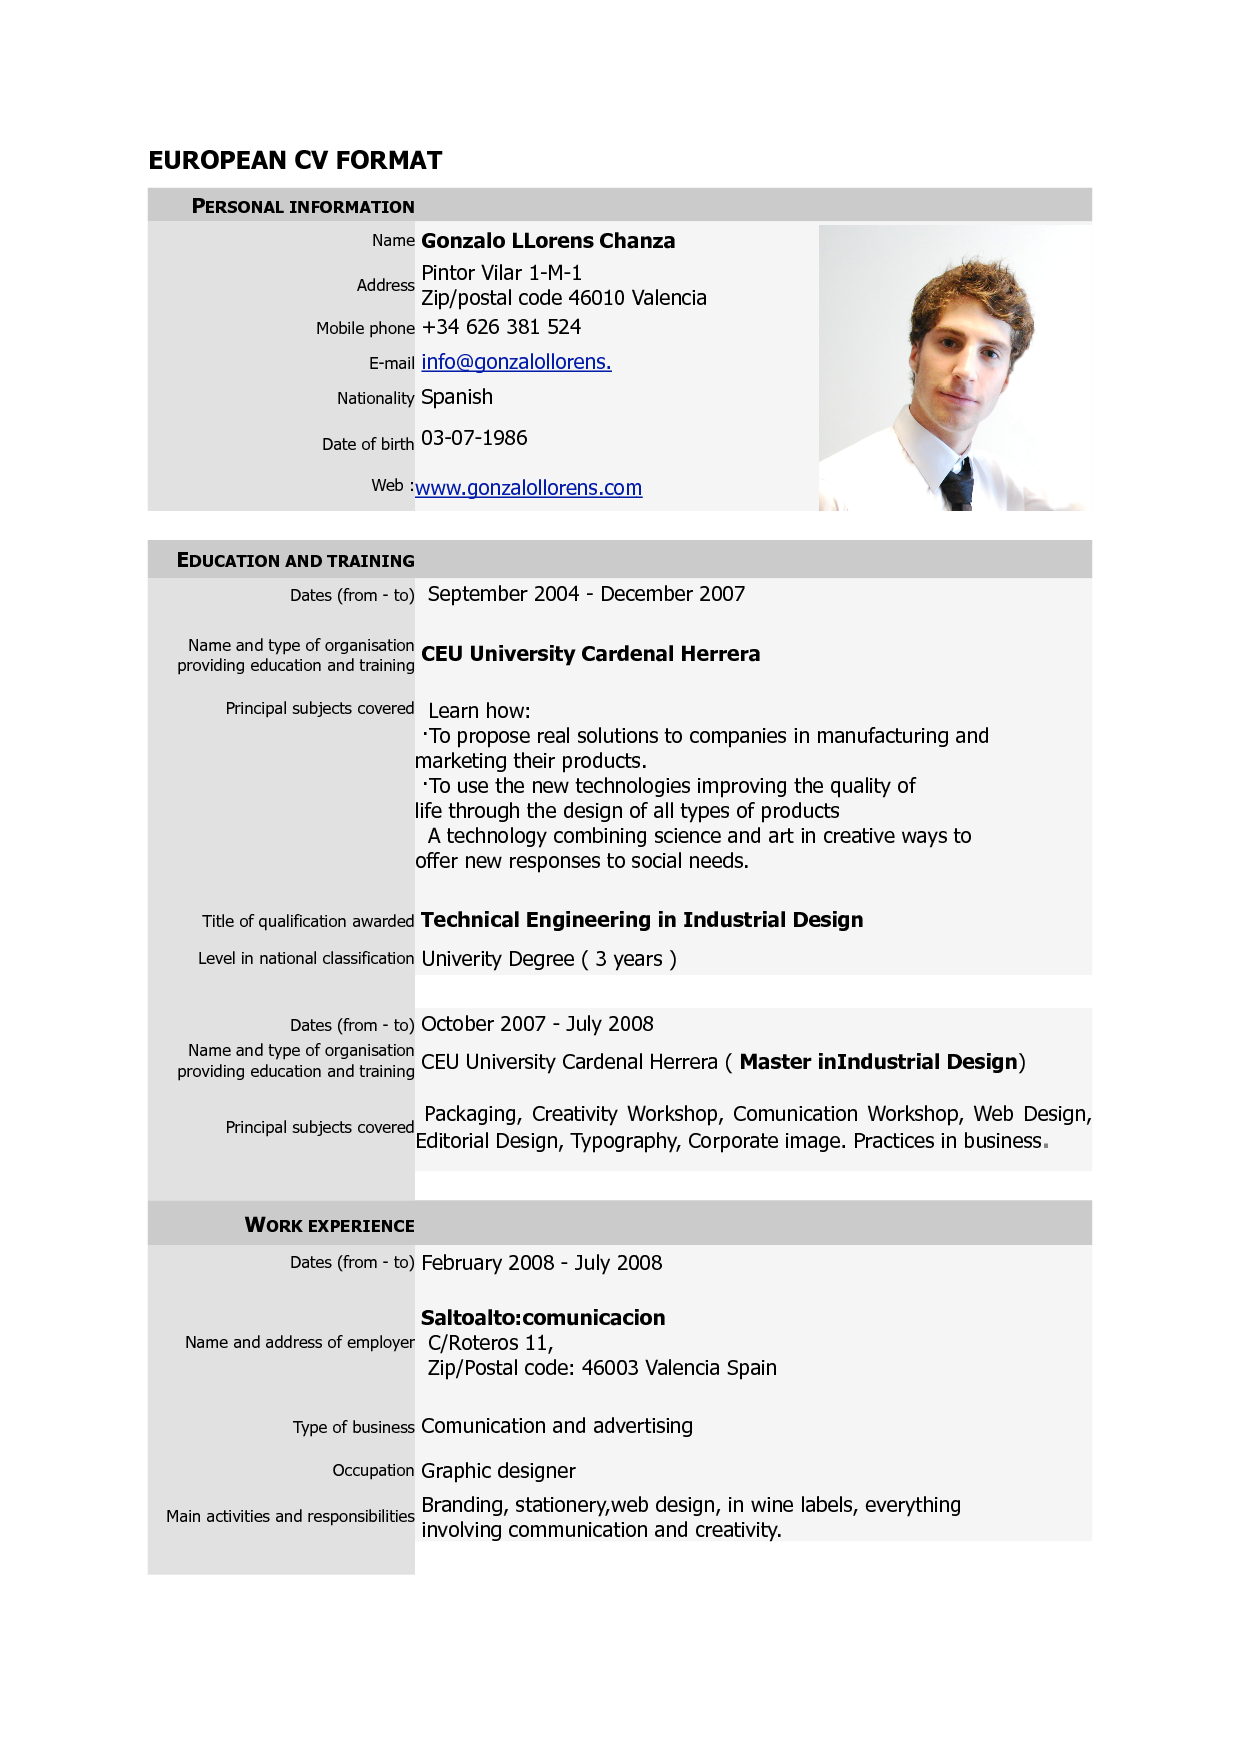 pdf resume sample medical claims analyst examples cover letter for rental application and get ideas best free home design idea inspiration - Cover Letter For Resume Sample Free Download